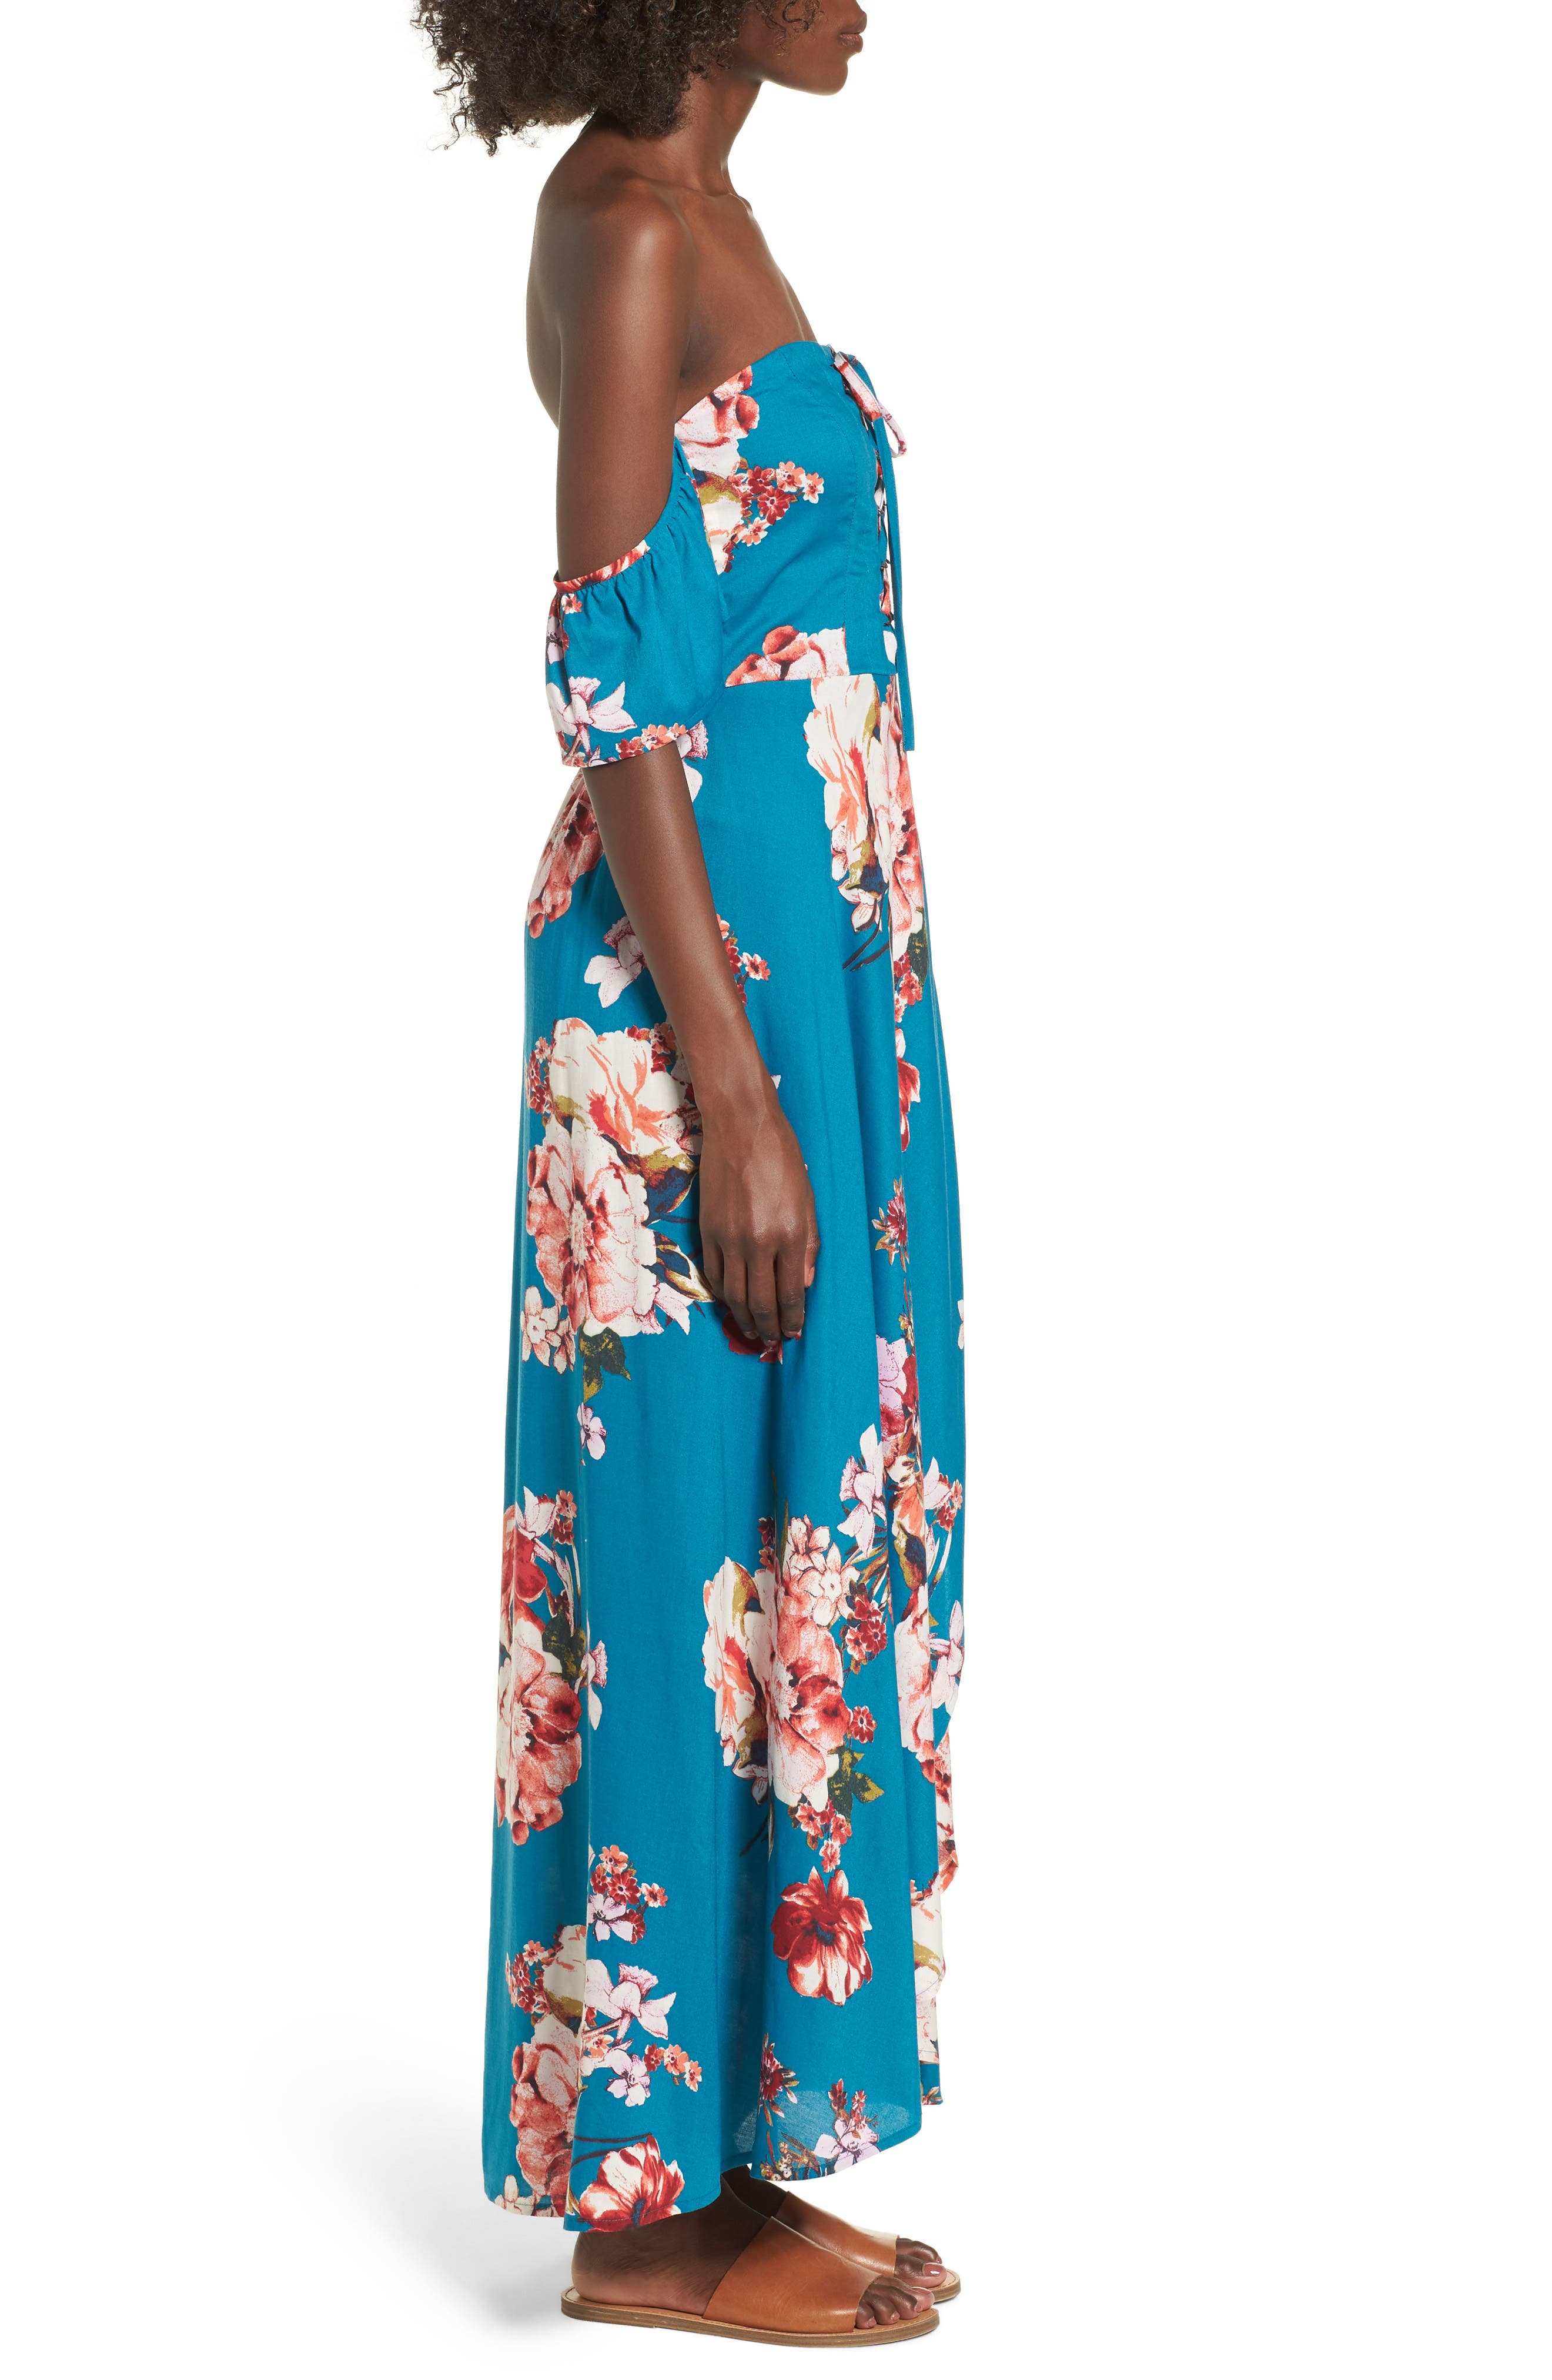 Lace Up Cold Shoulder Maxi Dress,                             Alternate thumbnail 3, color,                             Teal/ Peach